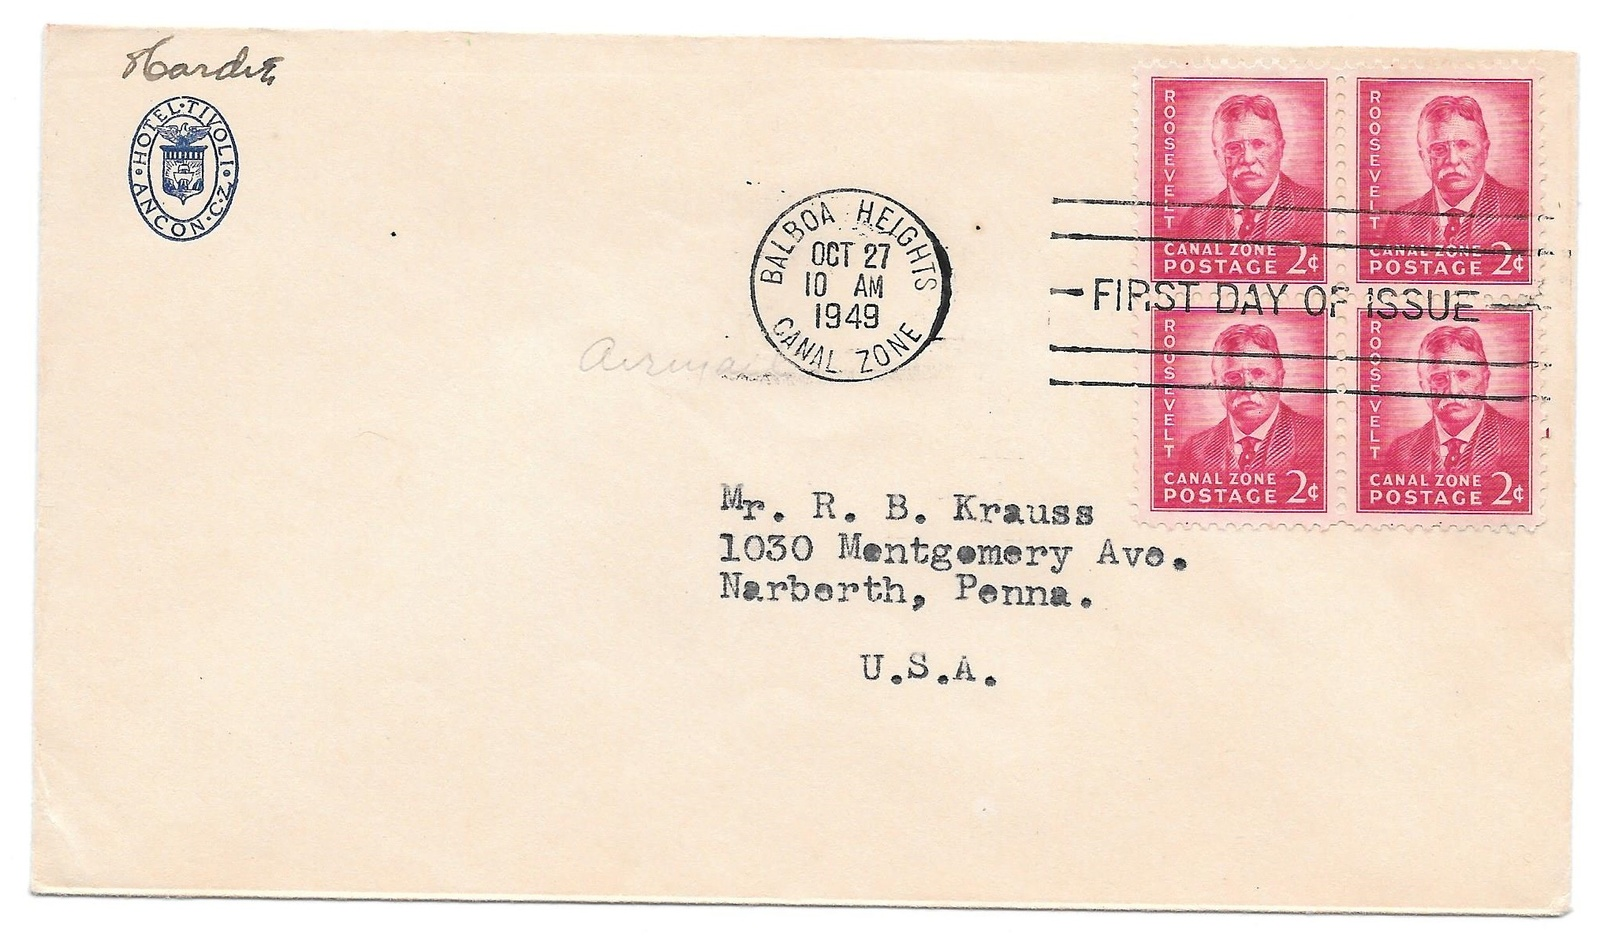 Tivoli Hotel Canal Zone Fdc Canal Zone 1949 Sc 138 Theodore And 20 Similar Items